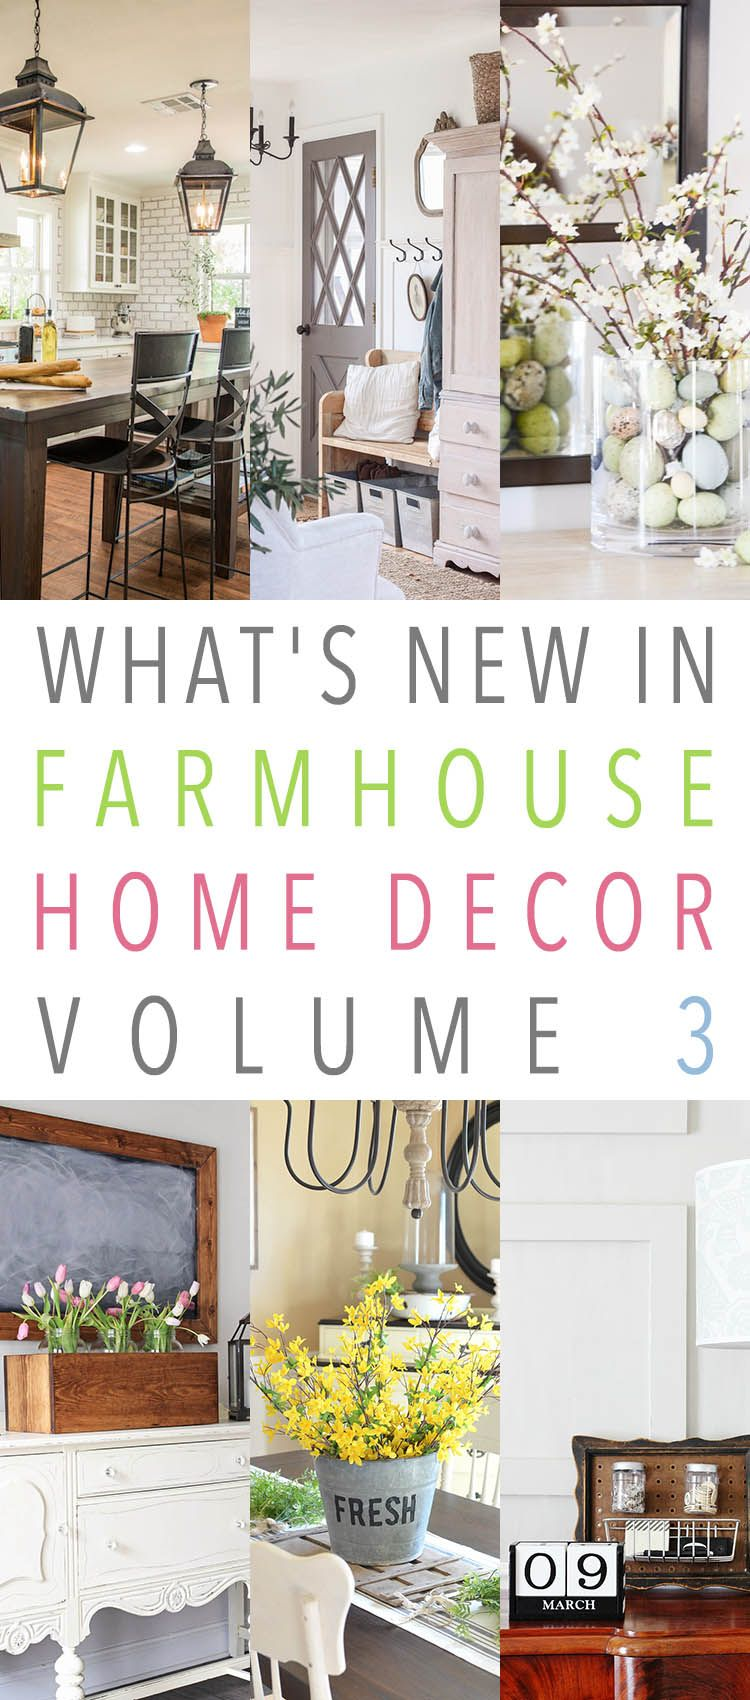 What's New in Farmhouse Home Decor Volume 3 - The Cottage Market